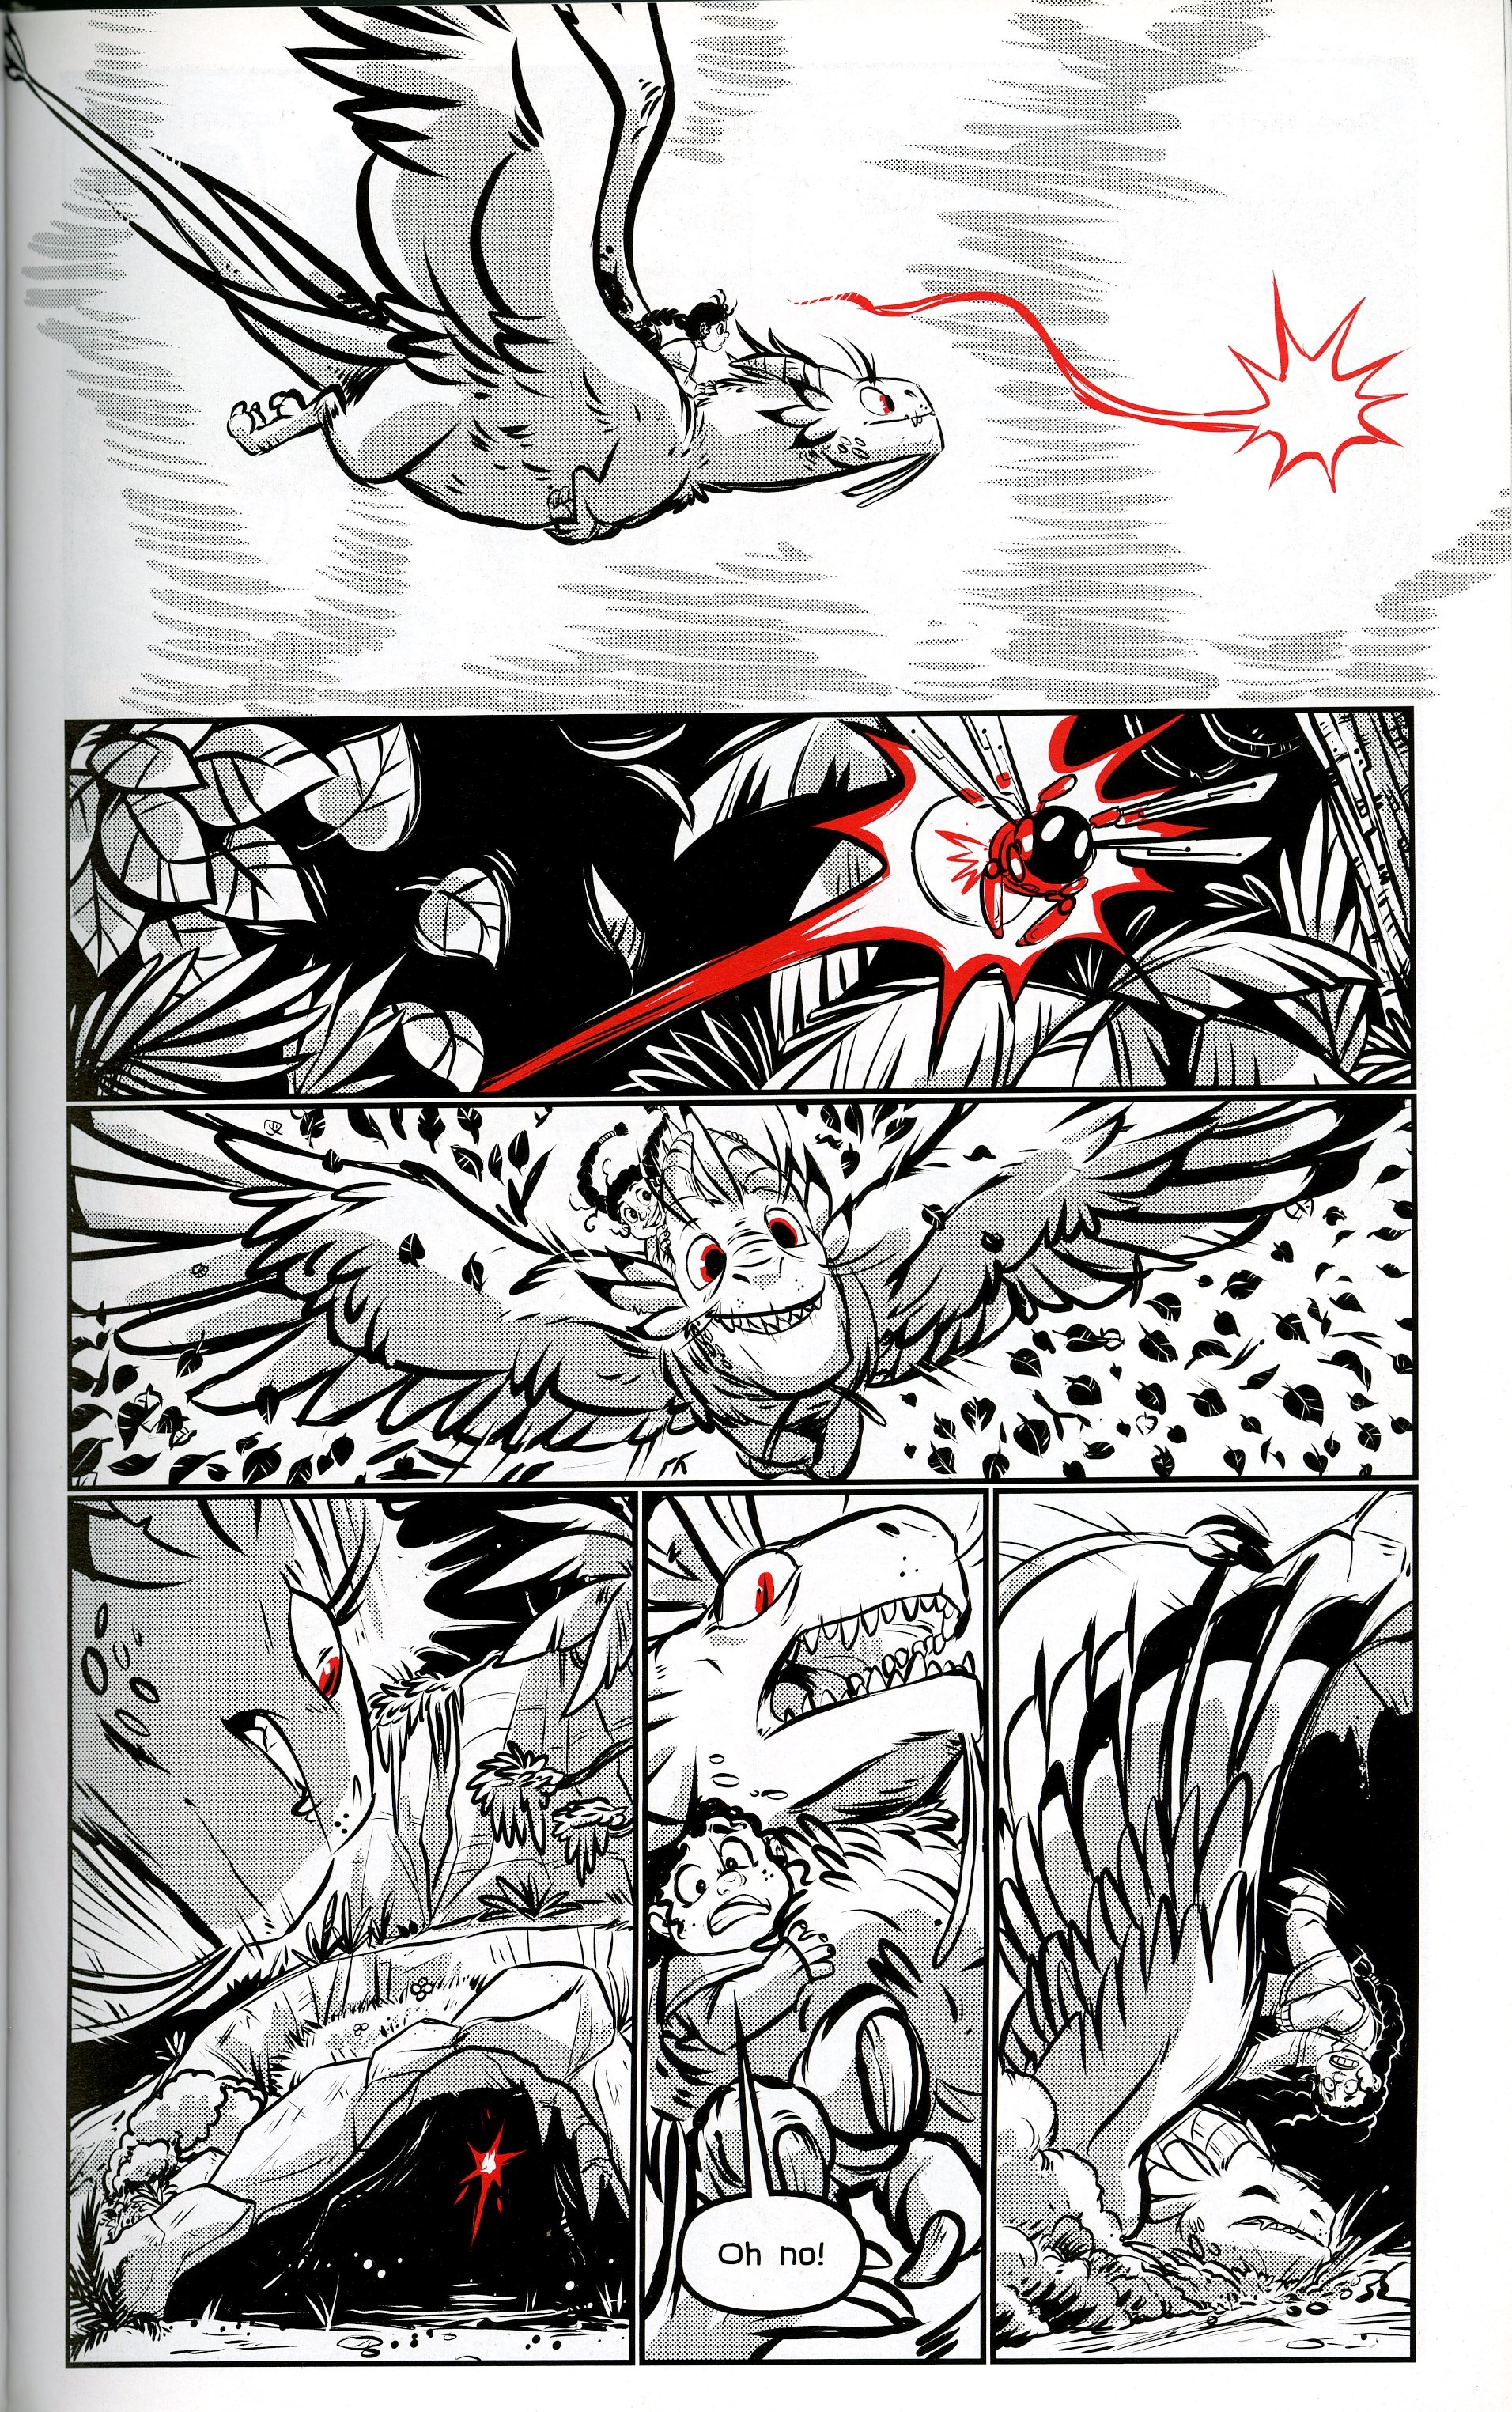 Elements Fire page 87.jpg